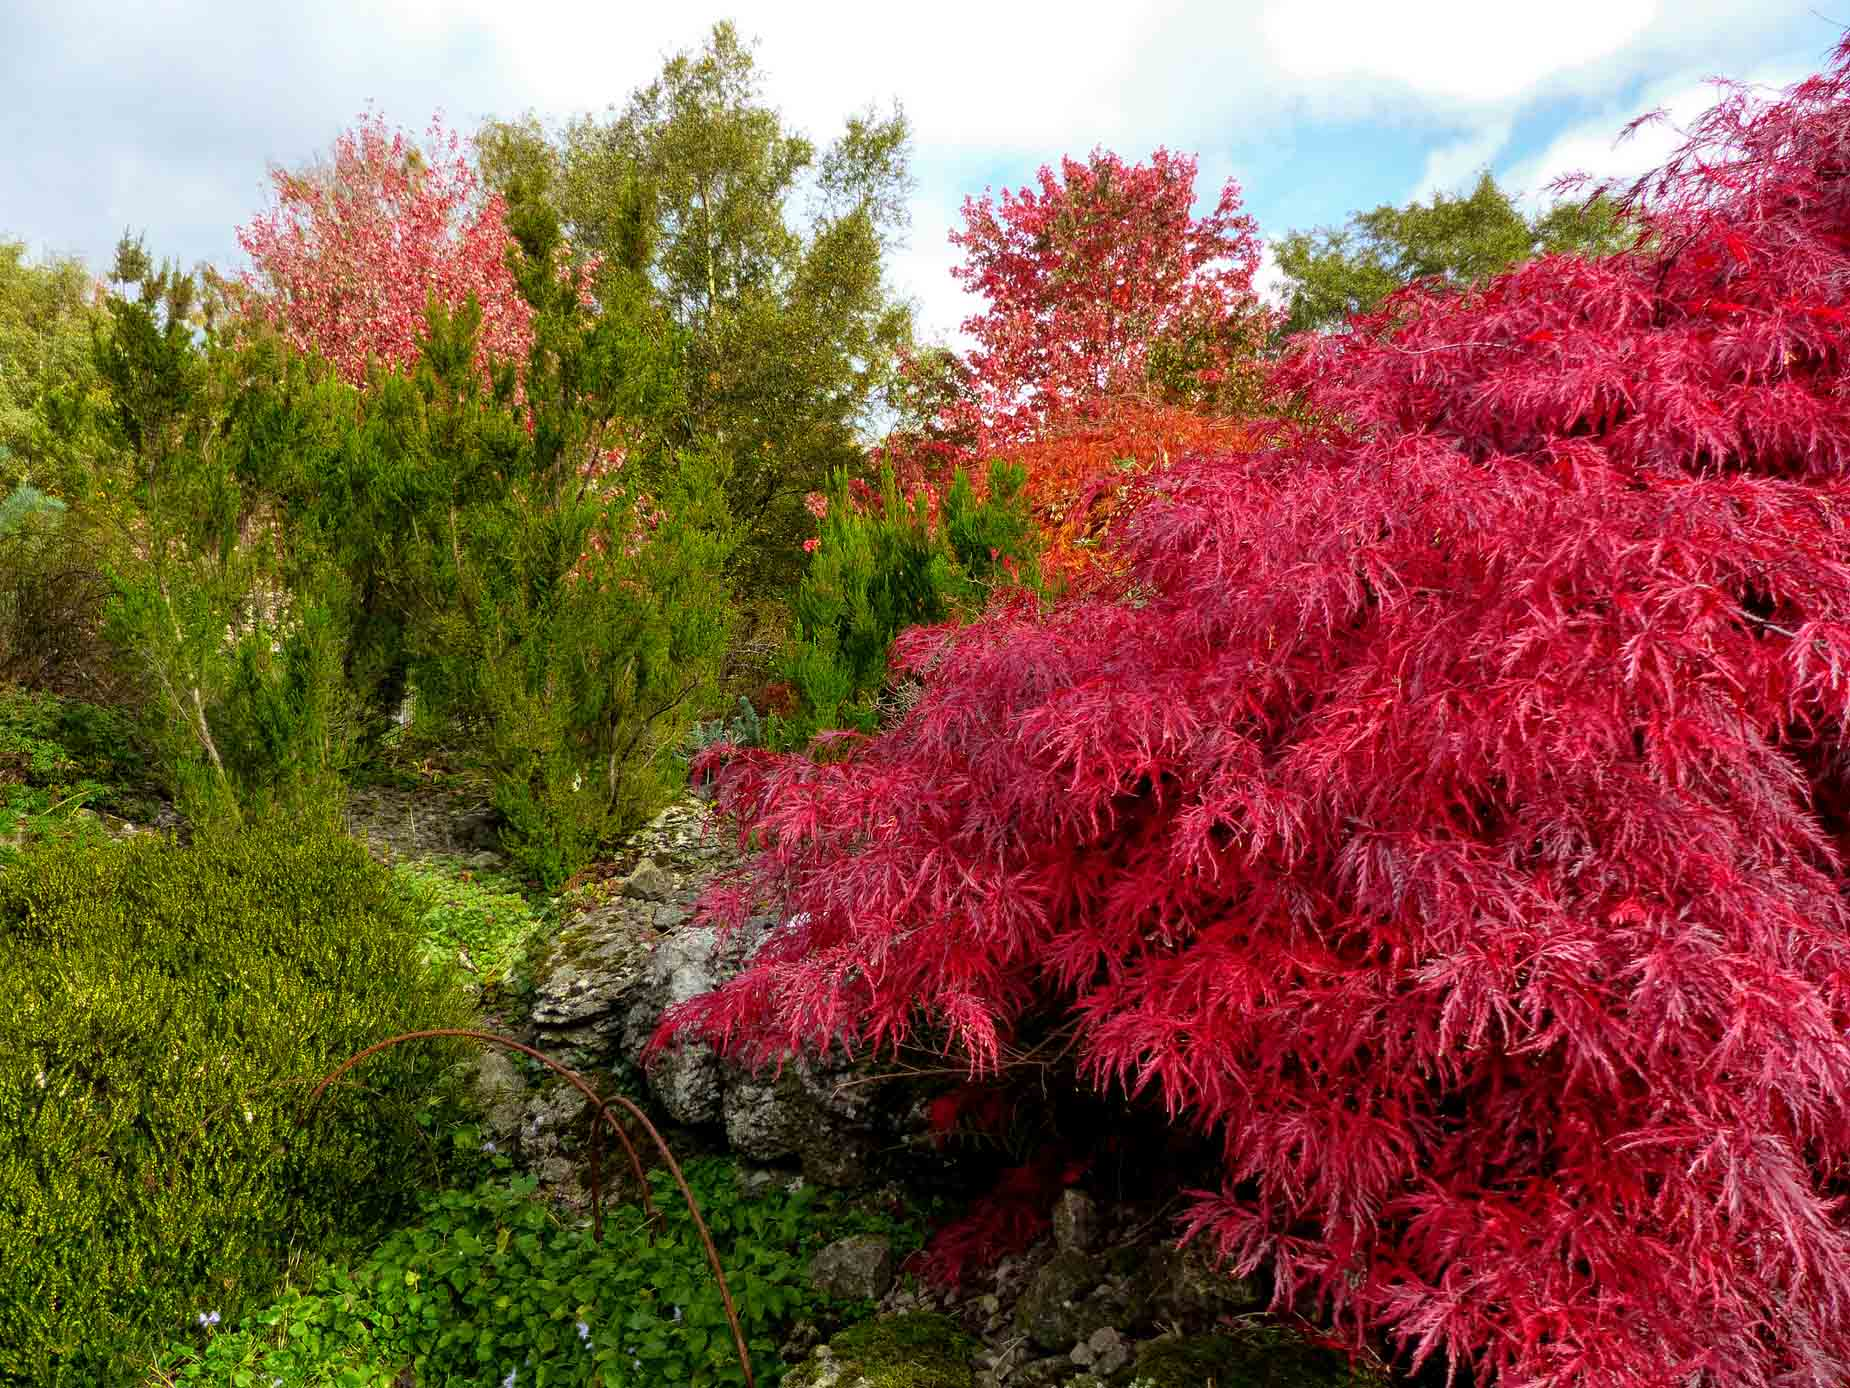 Red acer and other trees